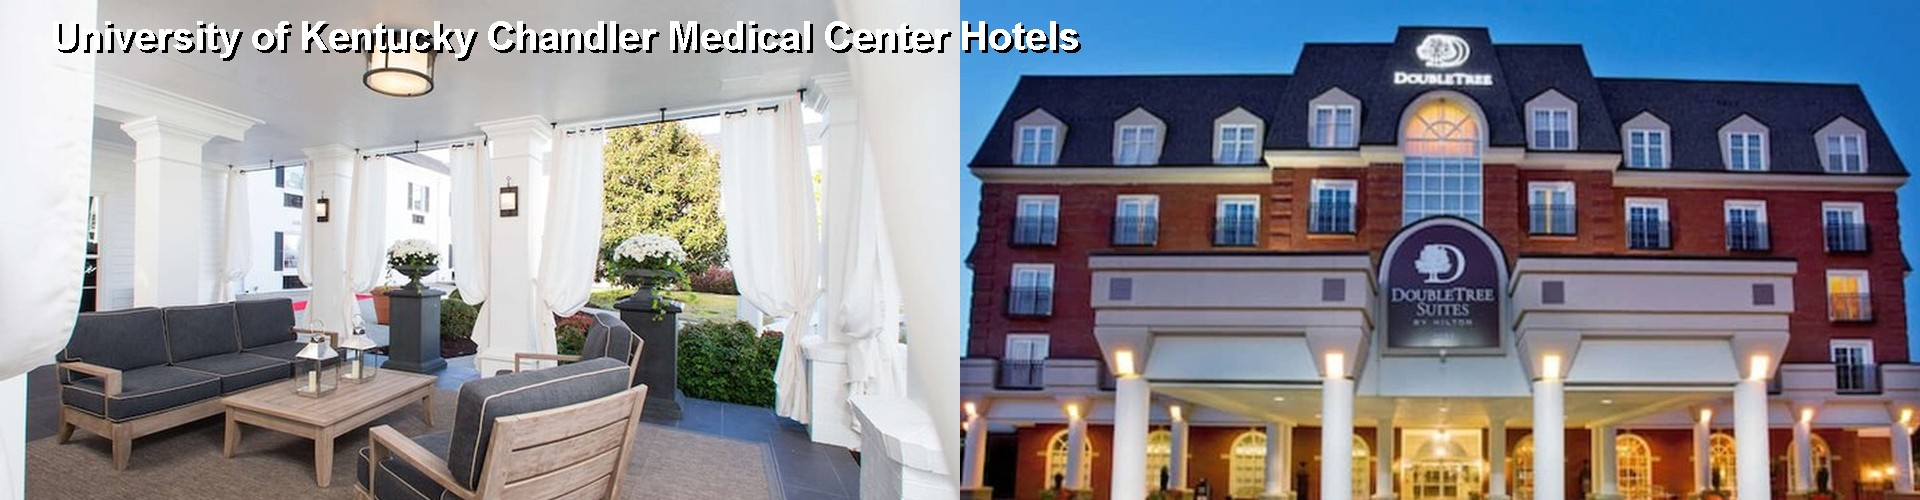 5 Best Hotels near University of Kentucky Chandler Medical Center